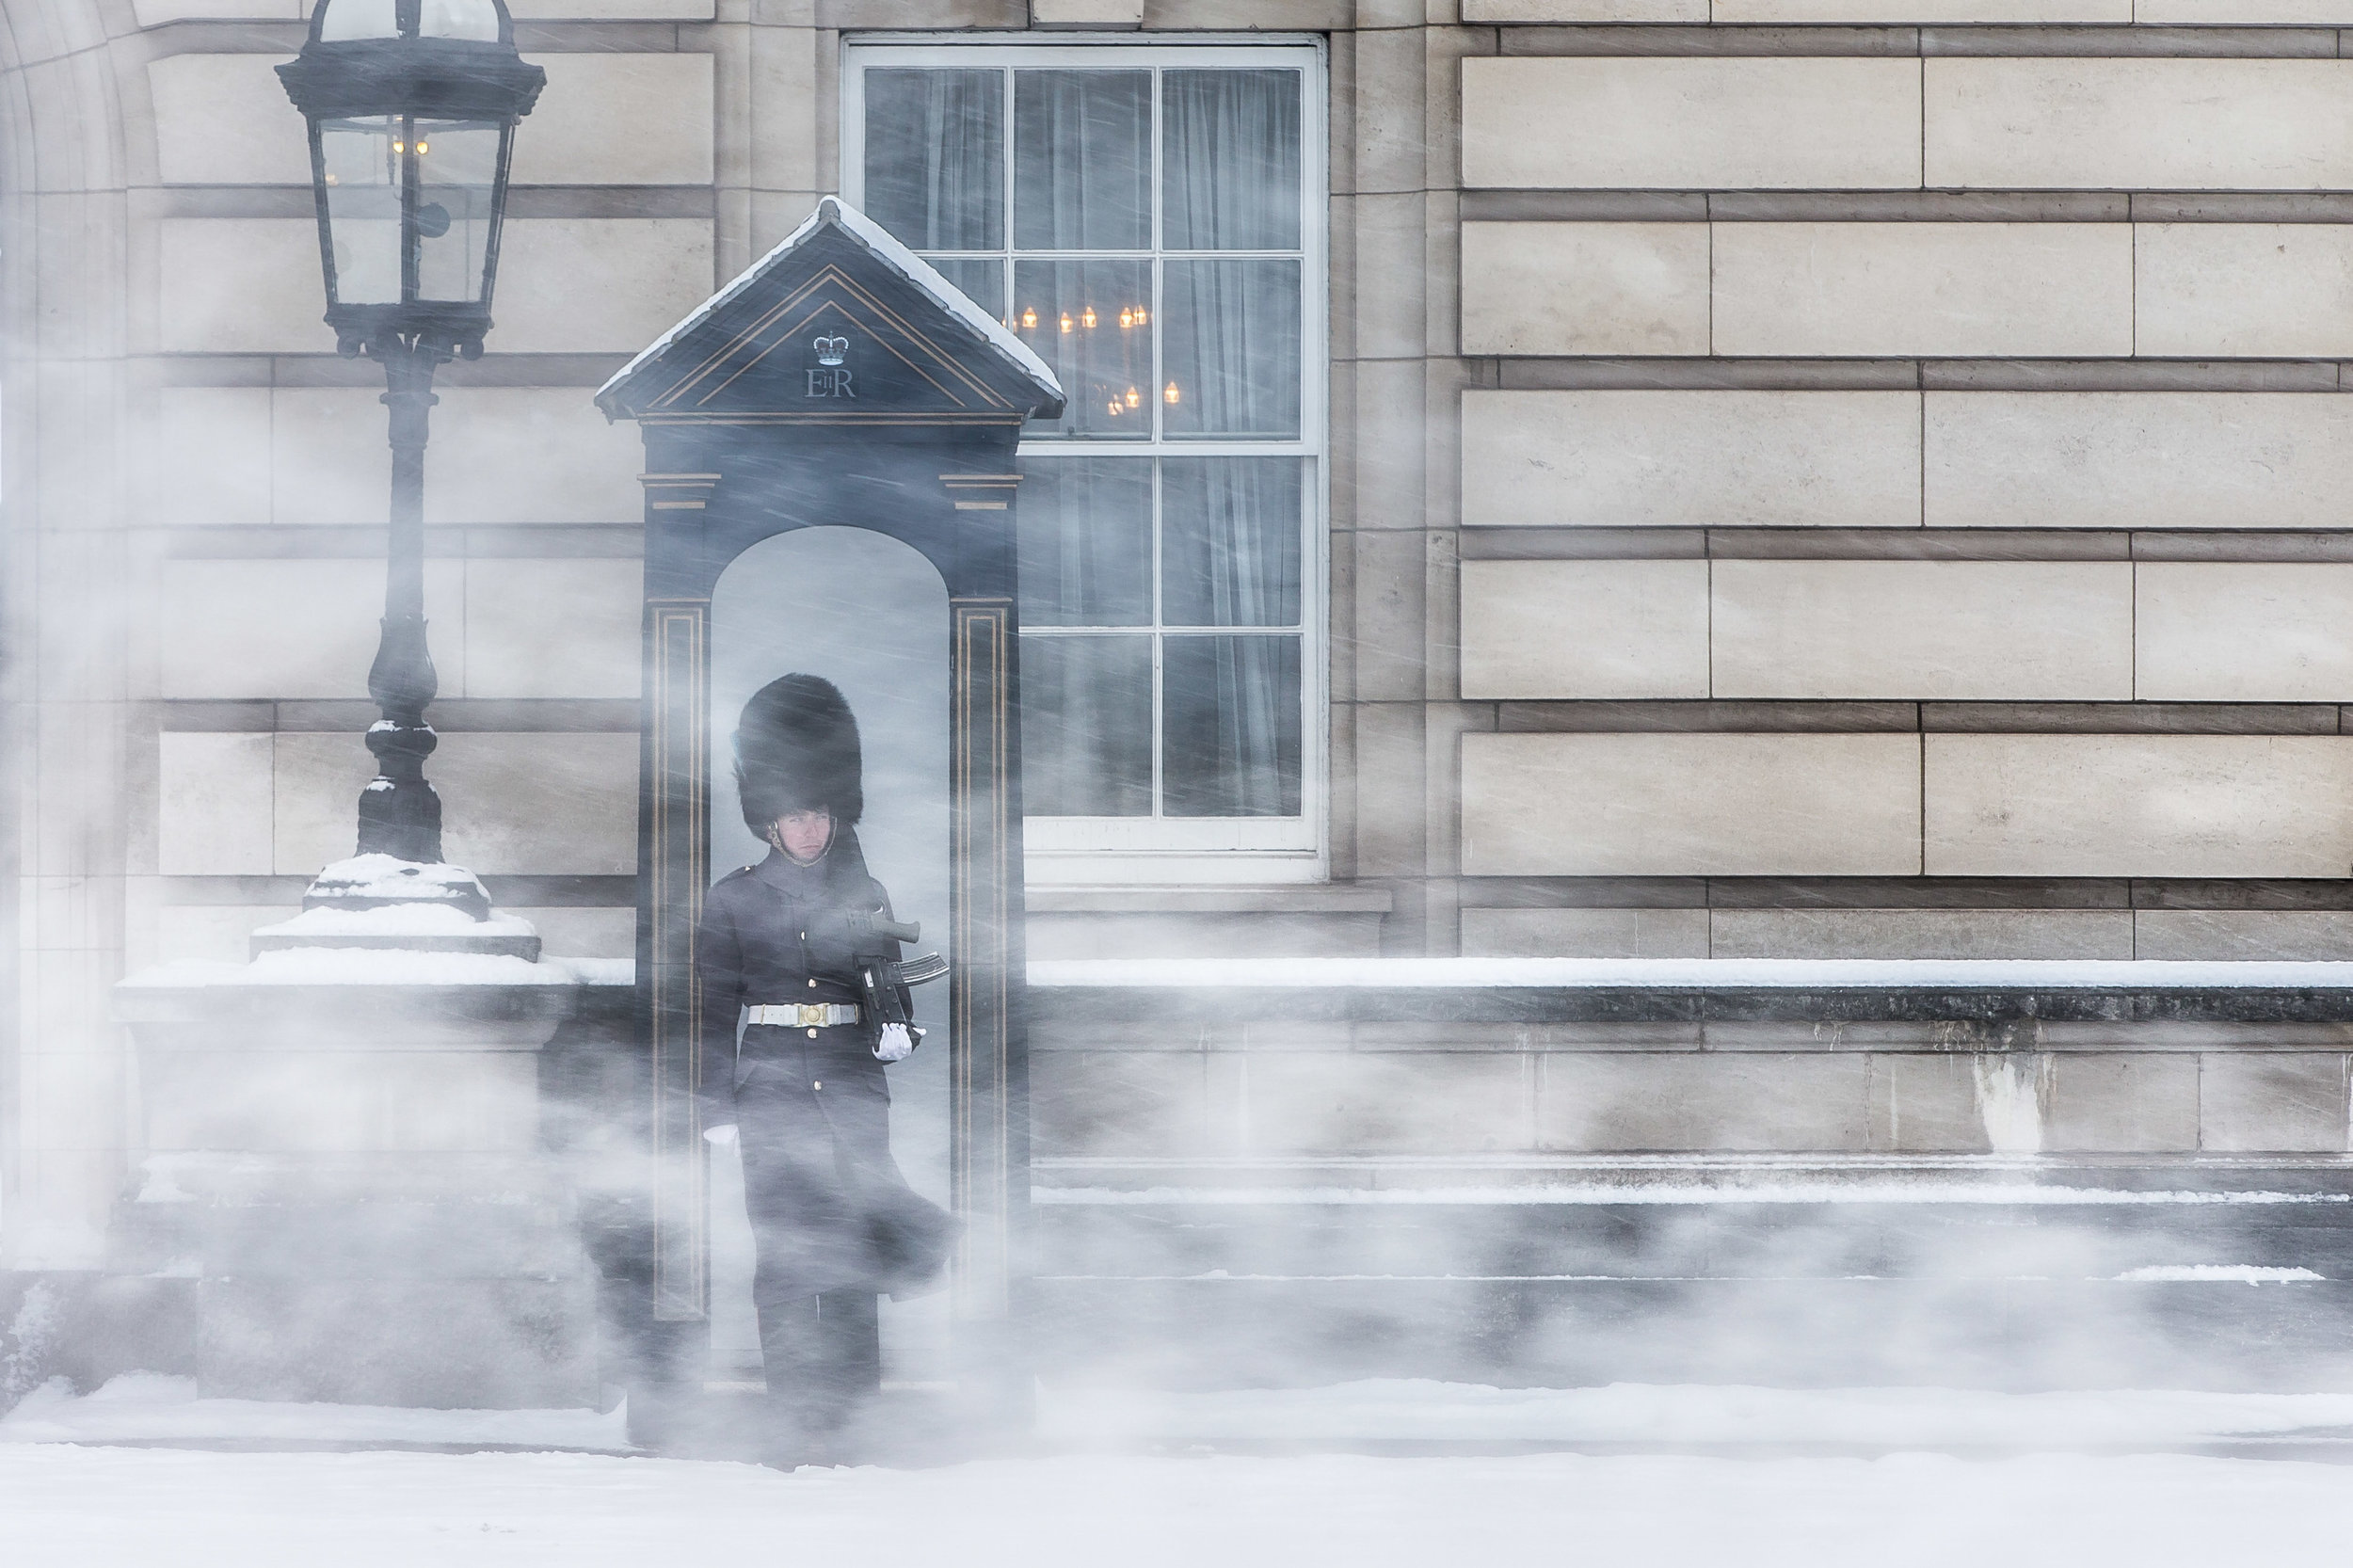 A Foot Guard from the Irish Guards Regiment outside Buckingham Palace during Storm Emma which covered the UK in snow in the winter of 2018. London, England - February 28 2018.